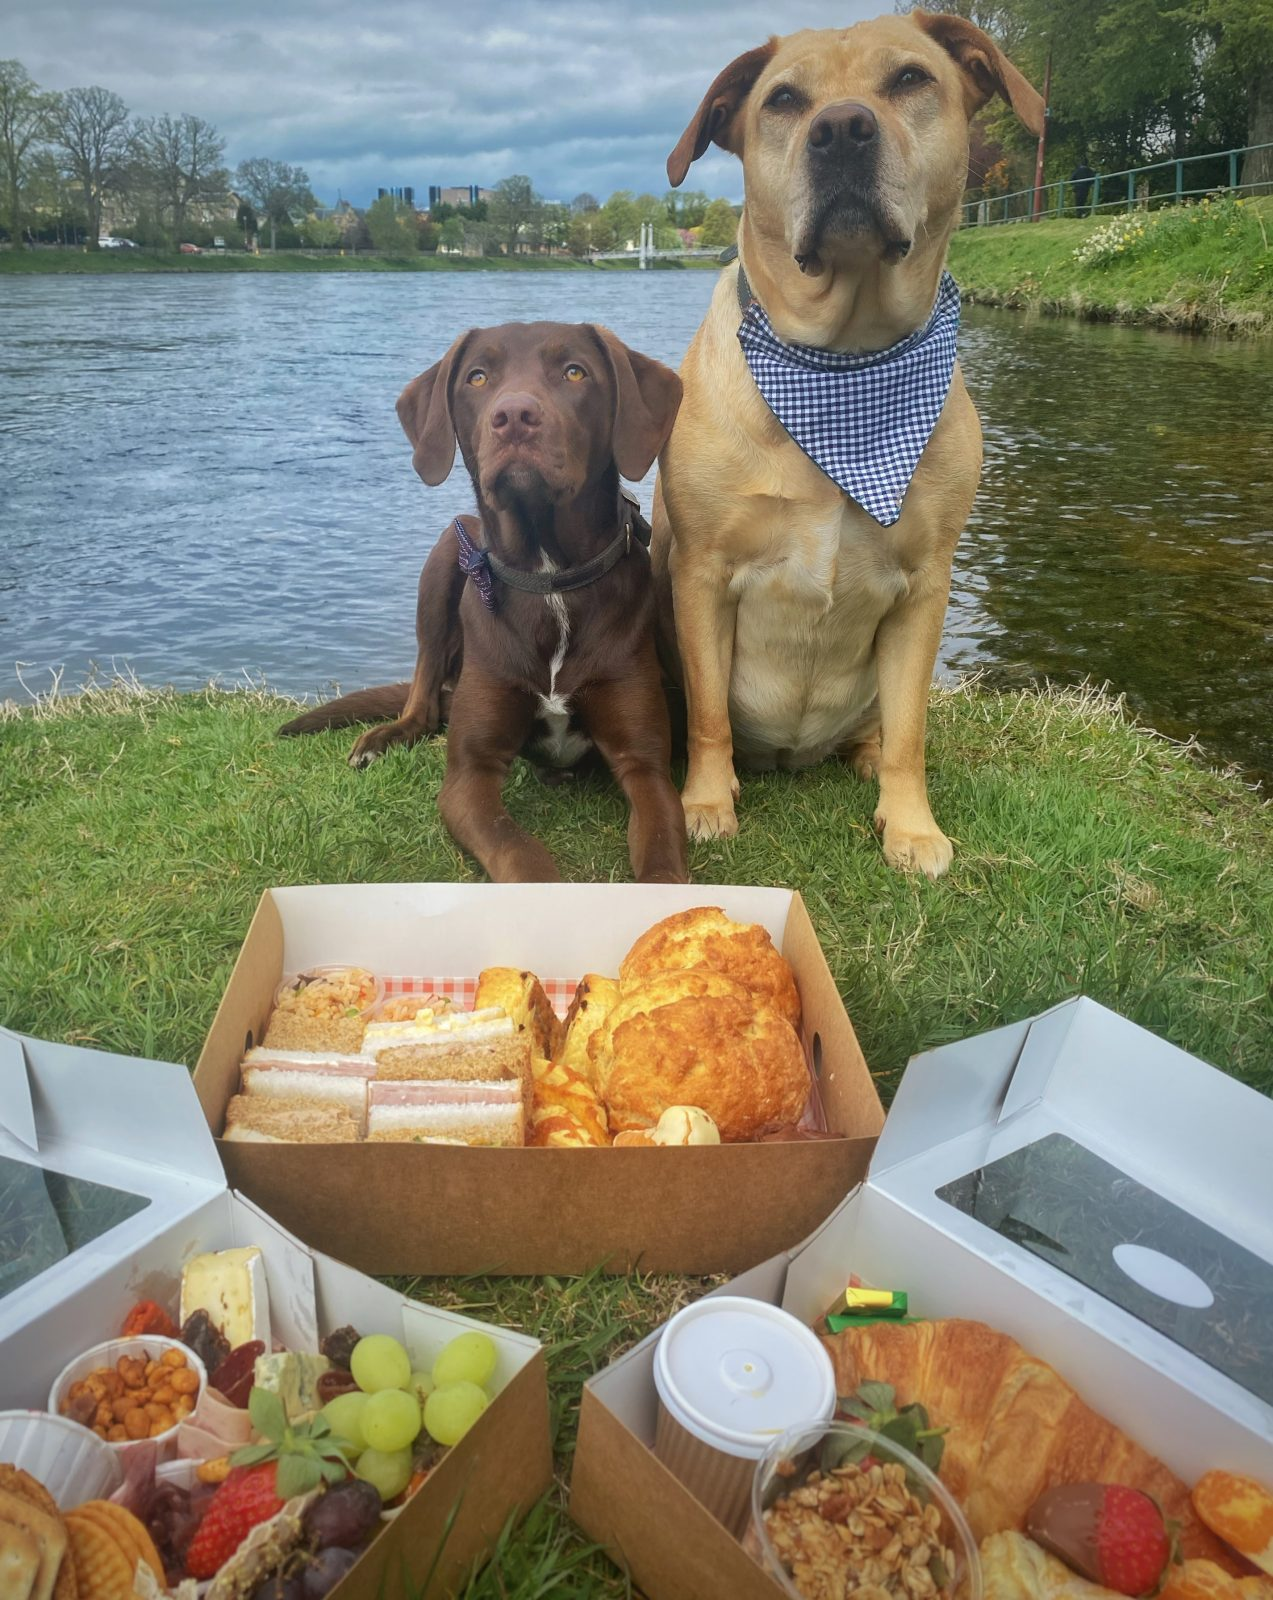 grazing platter by the River Ness with dogs